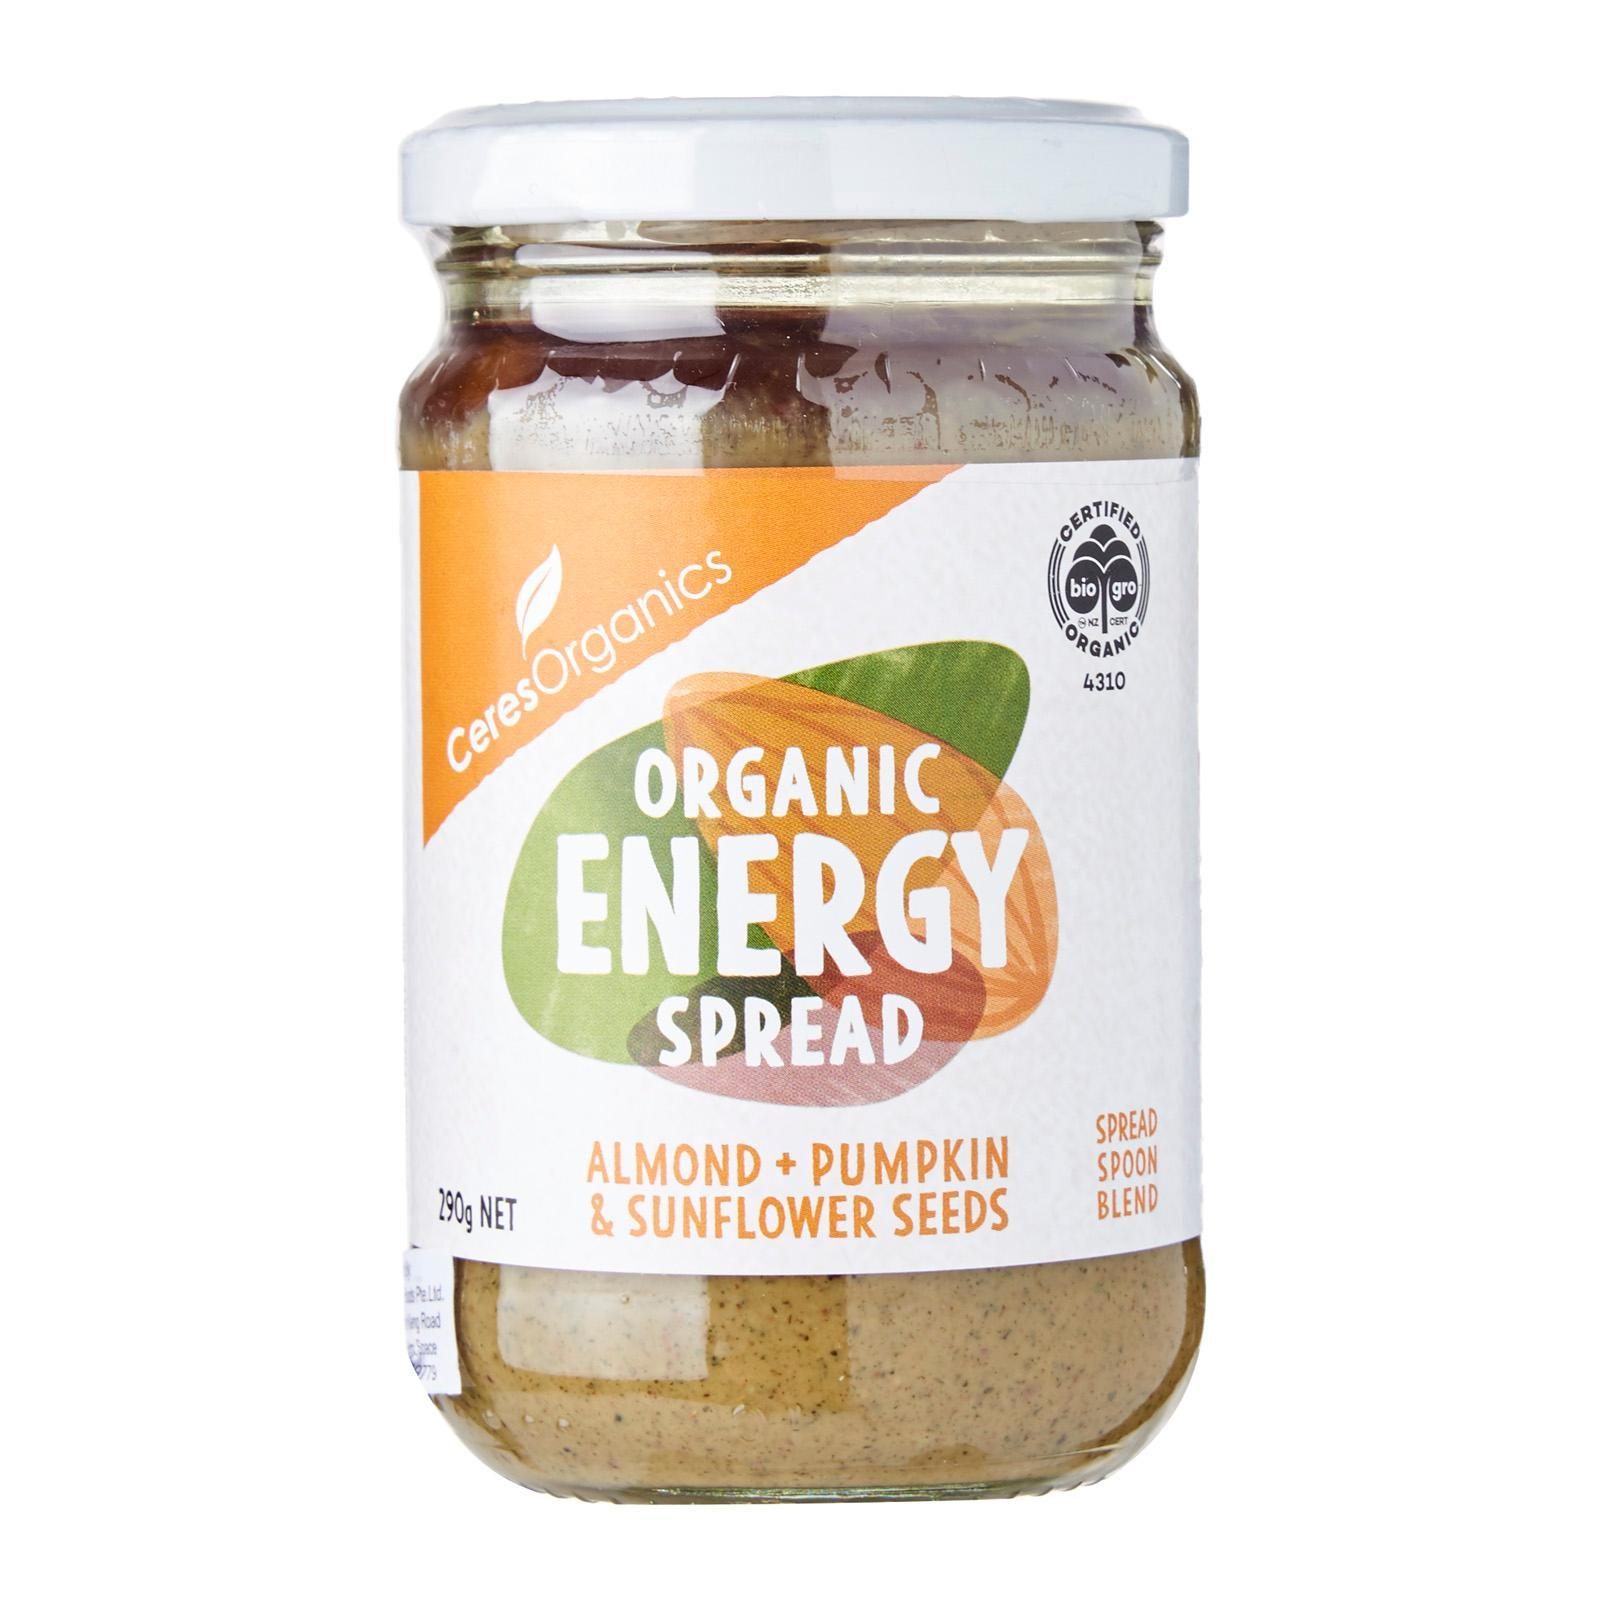 CERES ORGANICS Energy Spread (Pumpkin Sunflower Seed and Almond) - by Optimo Foods